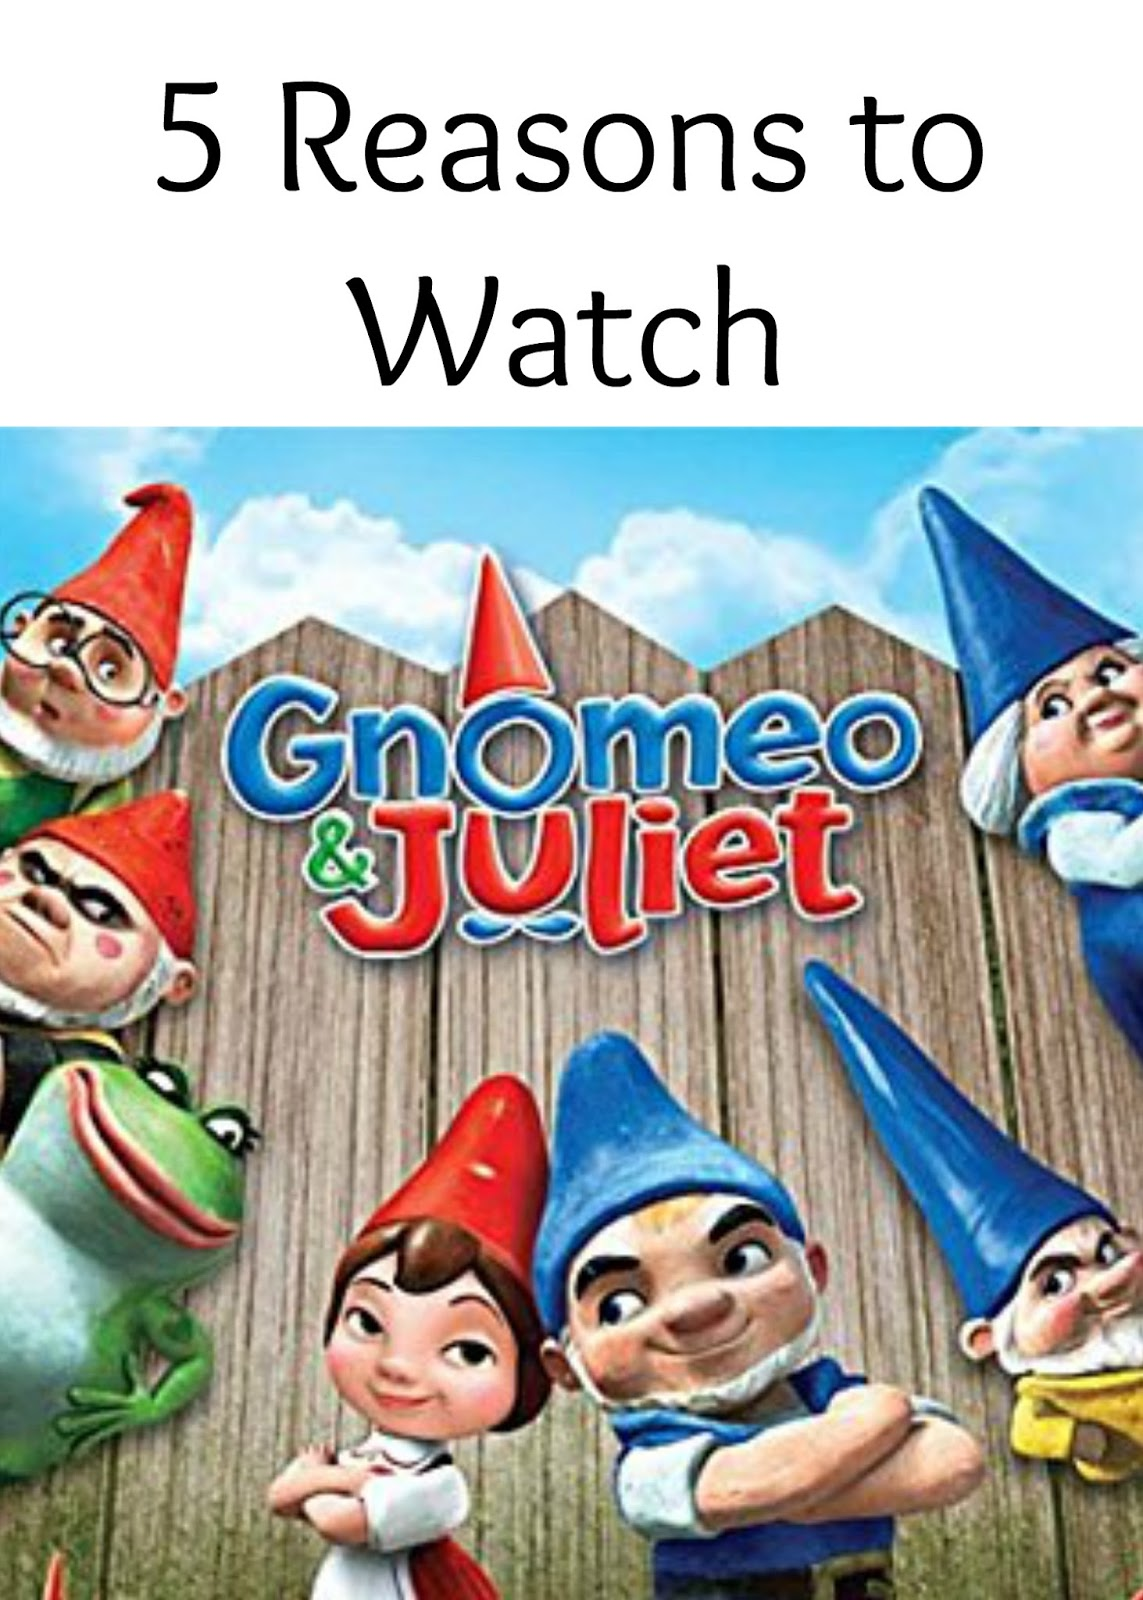 5 Reasons To Watch Gnomeo And Juliet